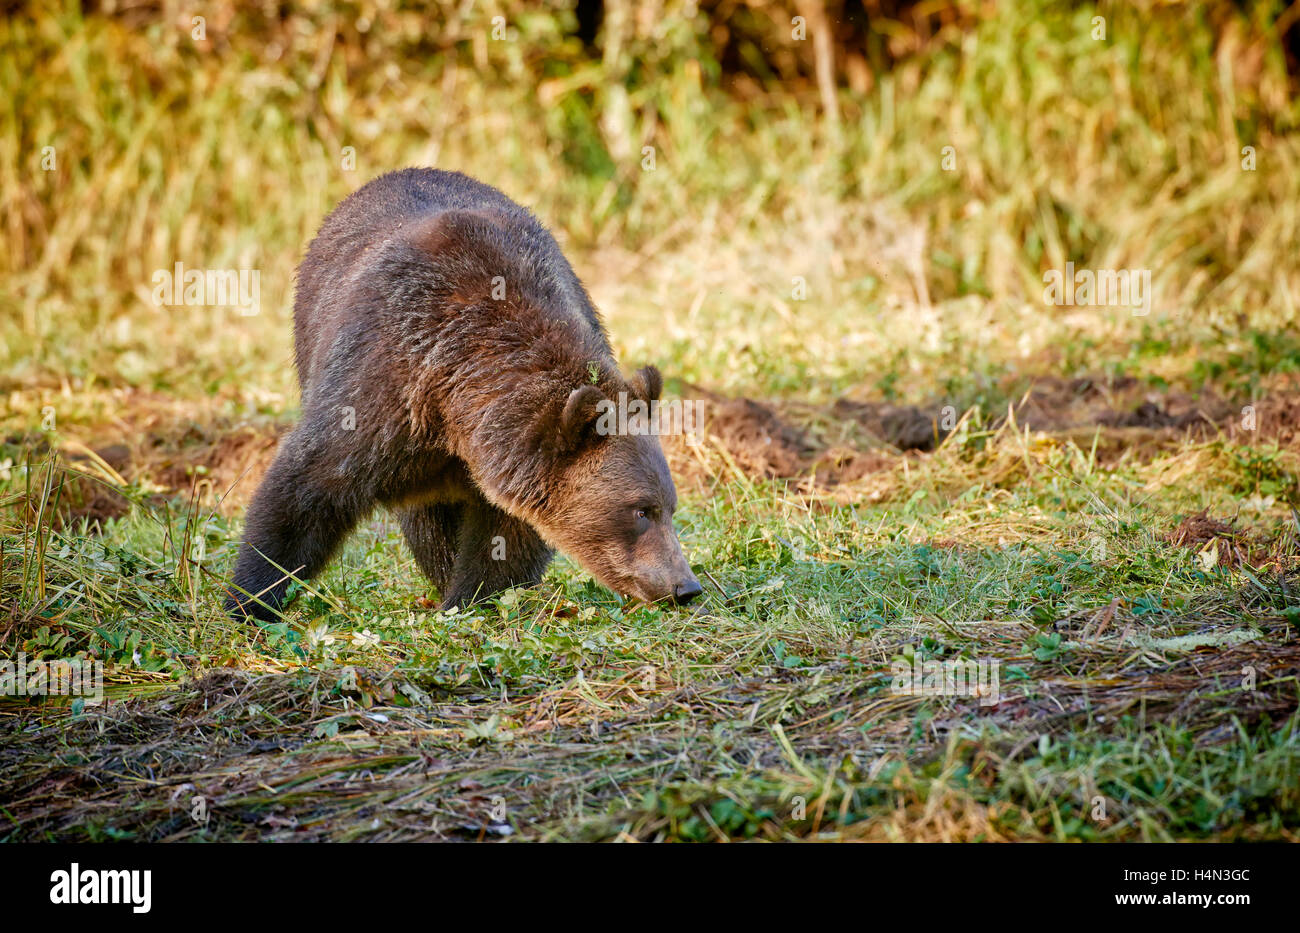 Grizzly bear, Ursus arctos horribilis, Great Bear Rainforest, Knight Inlet, Johnstone Strait, British Columbia, - Stock Image